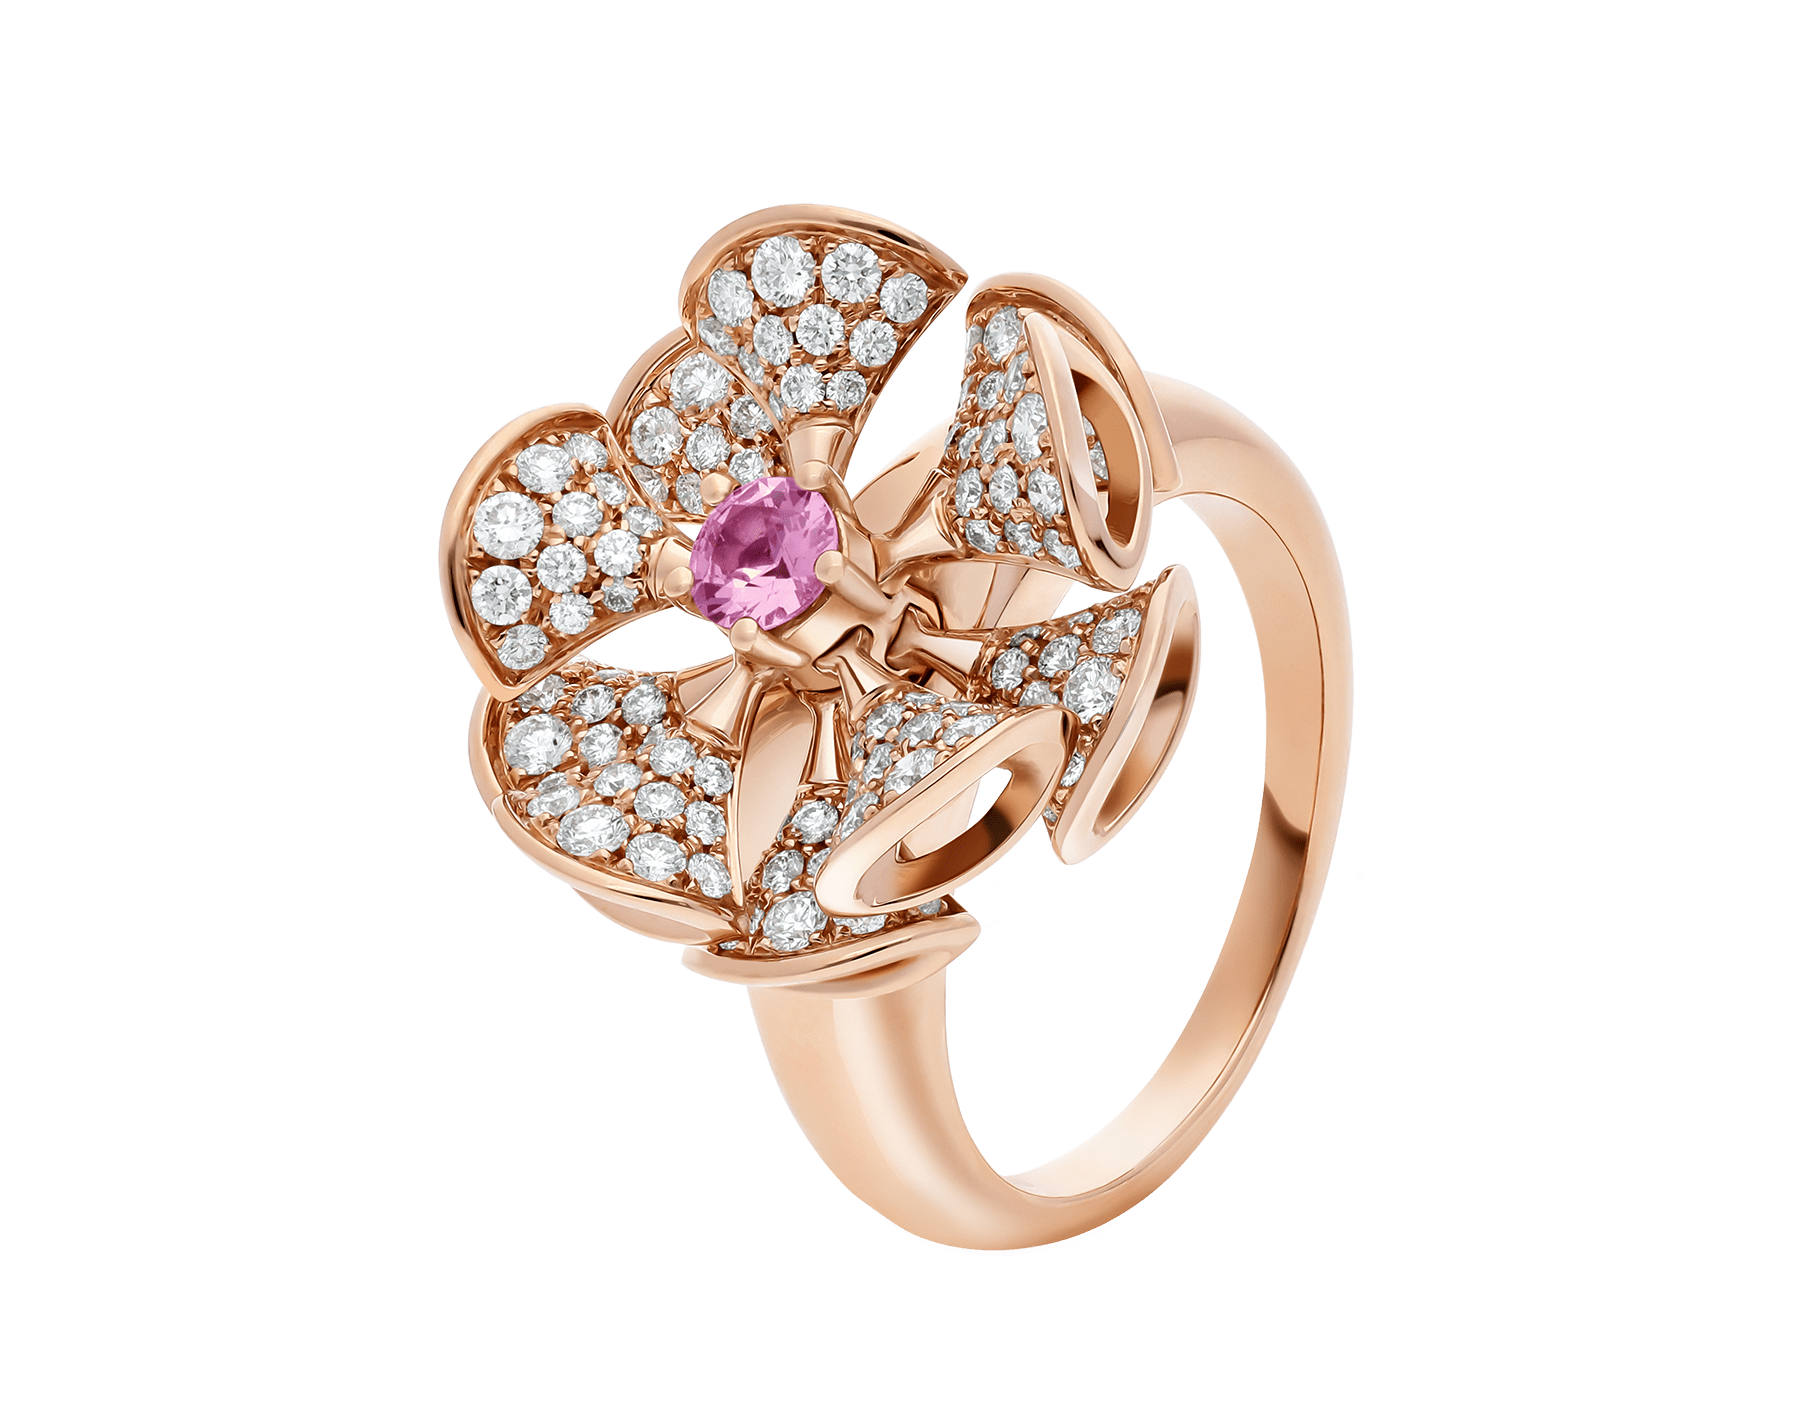 DIVAS' DREAM ring in 18 kt rose gold, set with a central pink sapphire and pavé diamonds (0.90 ct). AN857987 image 1